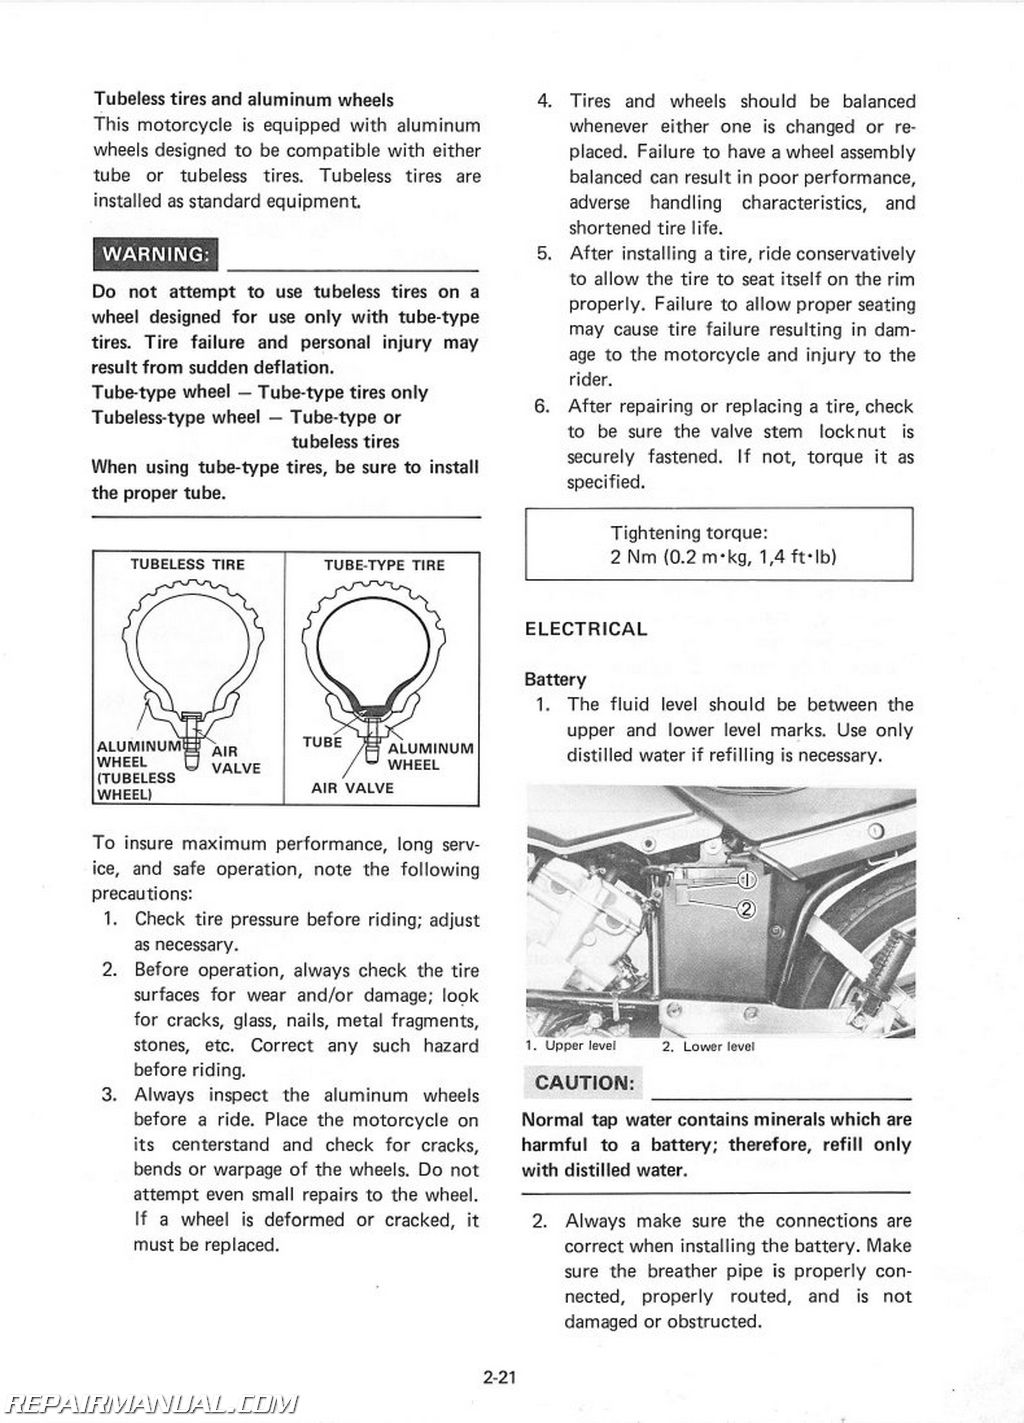 1982 yamaha xz550rj vision motorcycle owners service manual